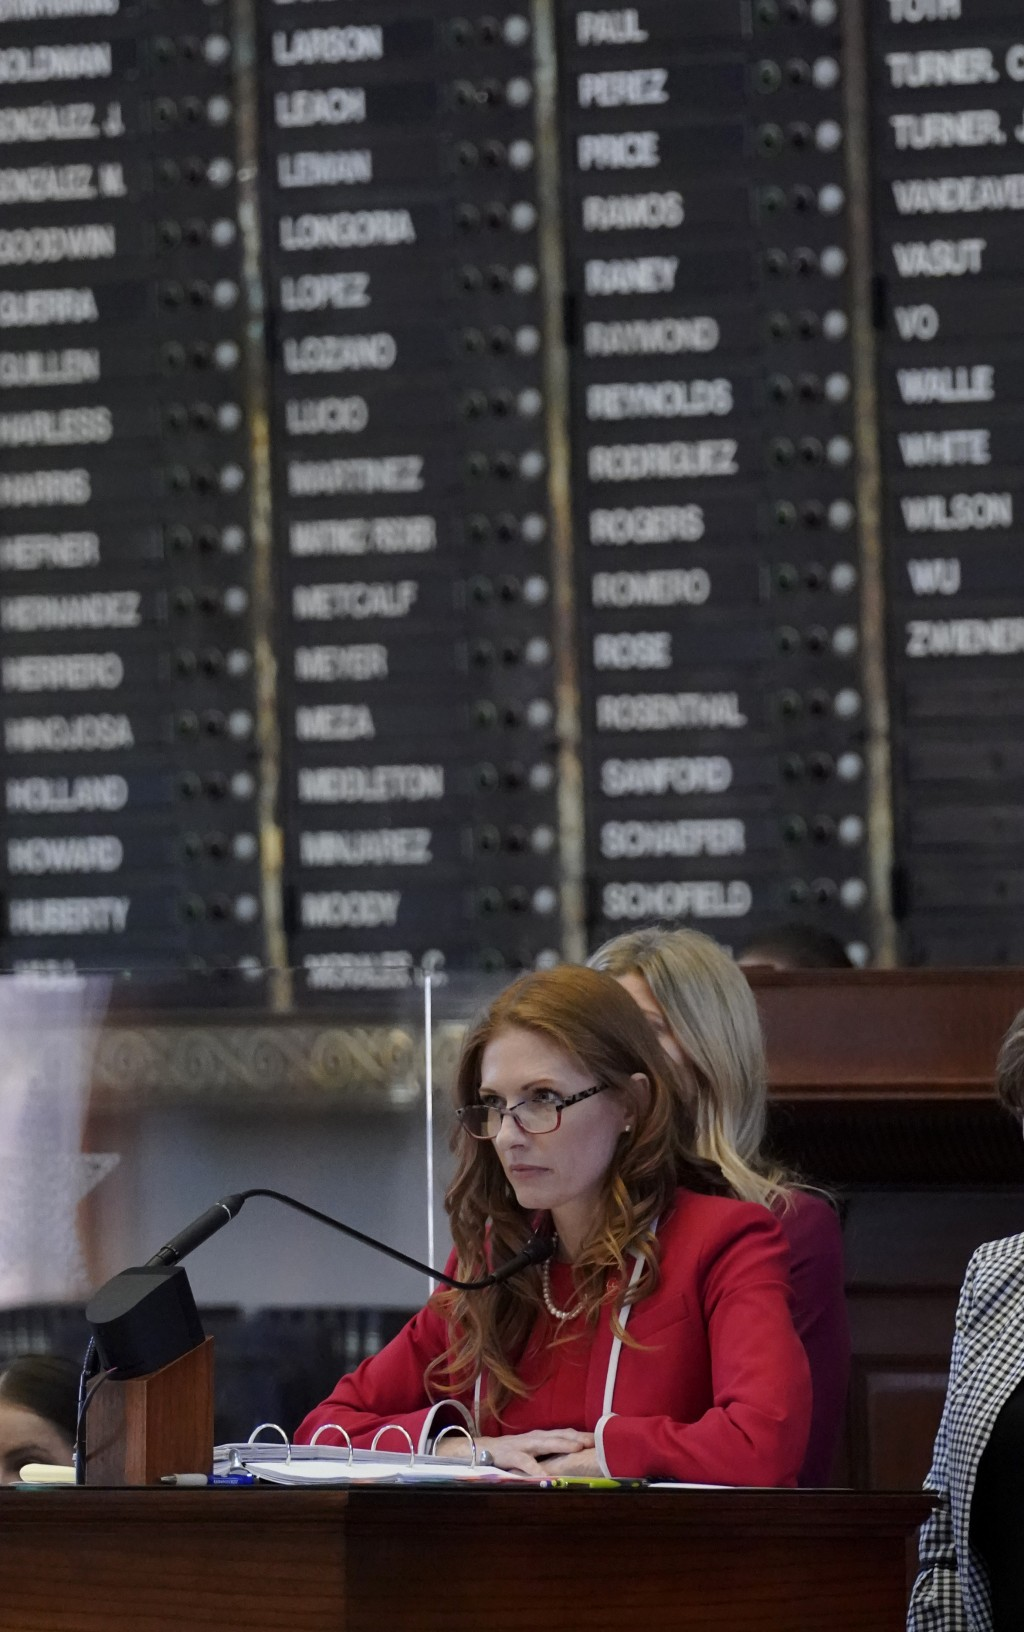 Texas State Rep. Shelby Slawson, R-Stephenville, center, answers questions about a proposed bill in the House Chamber, Wednesday, May 5, 2021, in Aust...